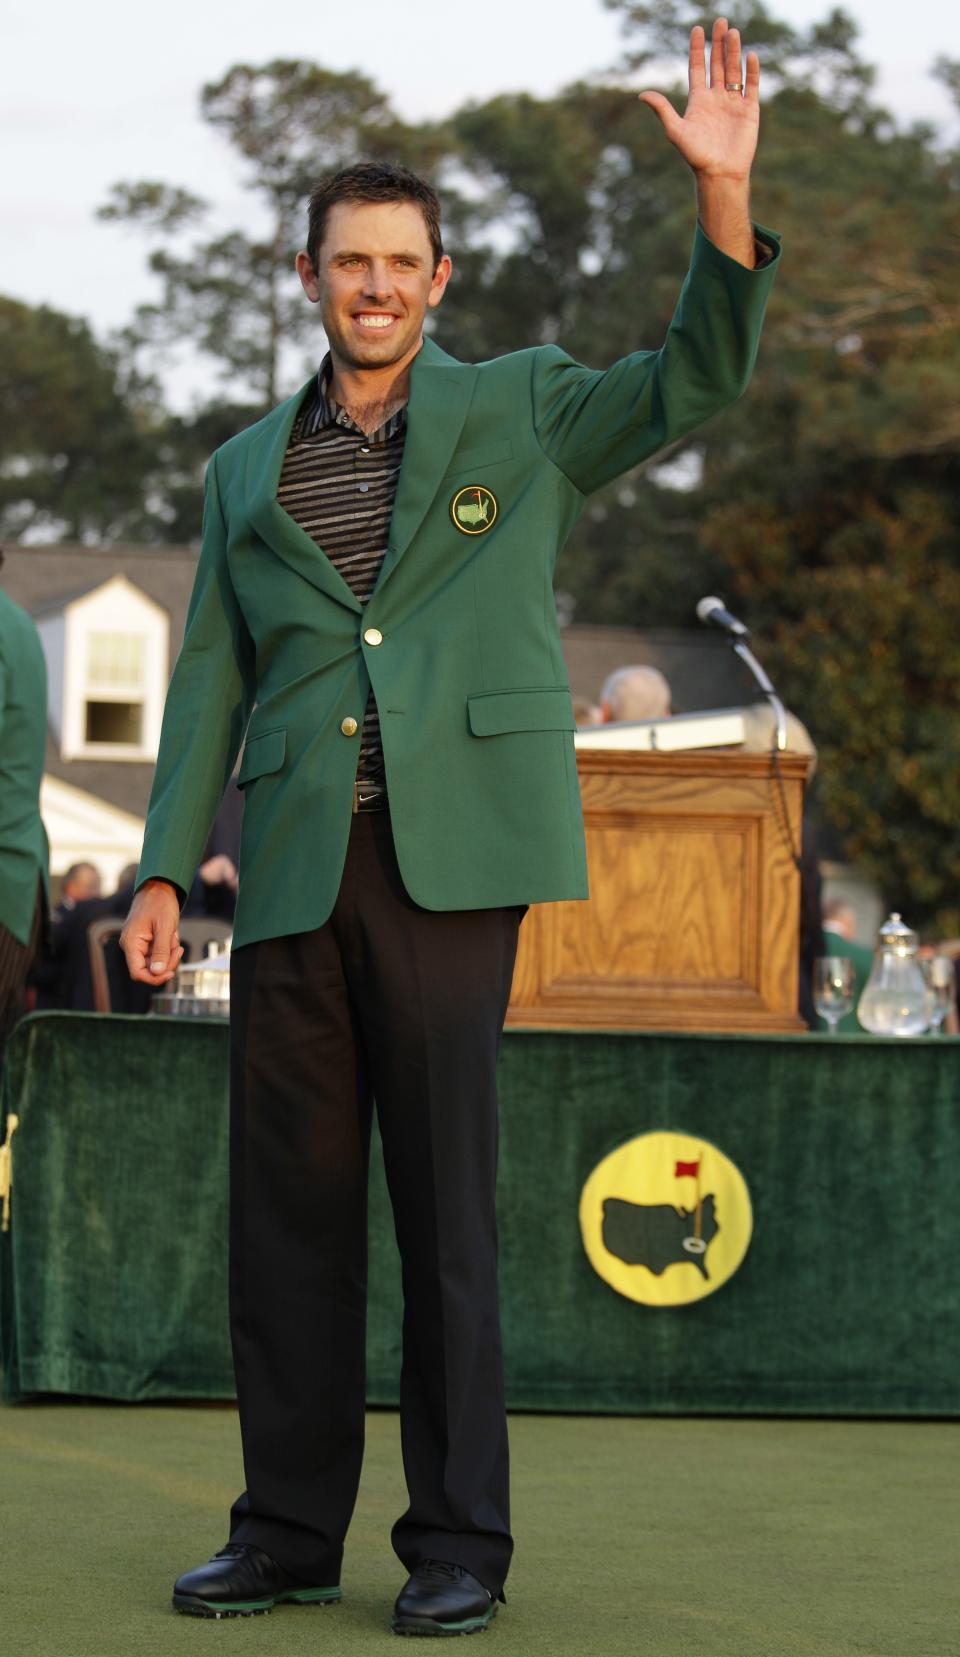 Charl Schwartzel of South Africa waves after winning the Masters championship golf tournament Sunday, April 10, 2011, in Augusta, Ga. (AP Photo/Charlie Riedel)